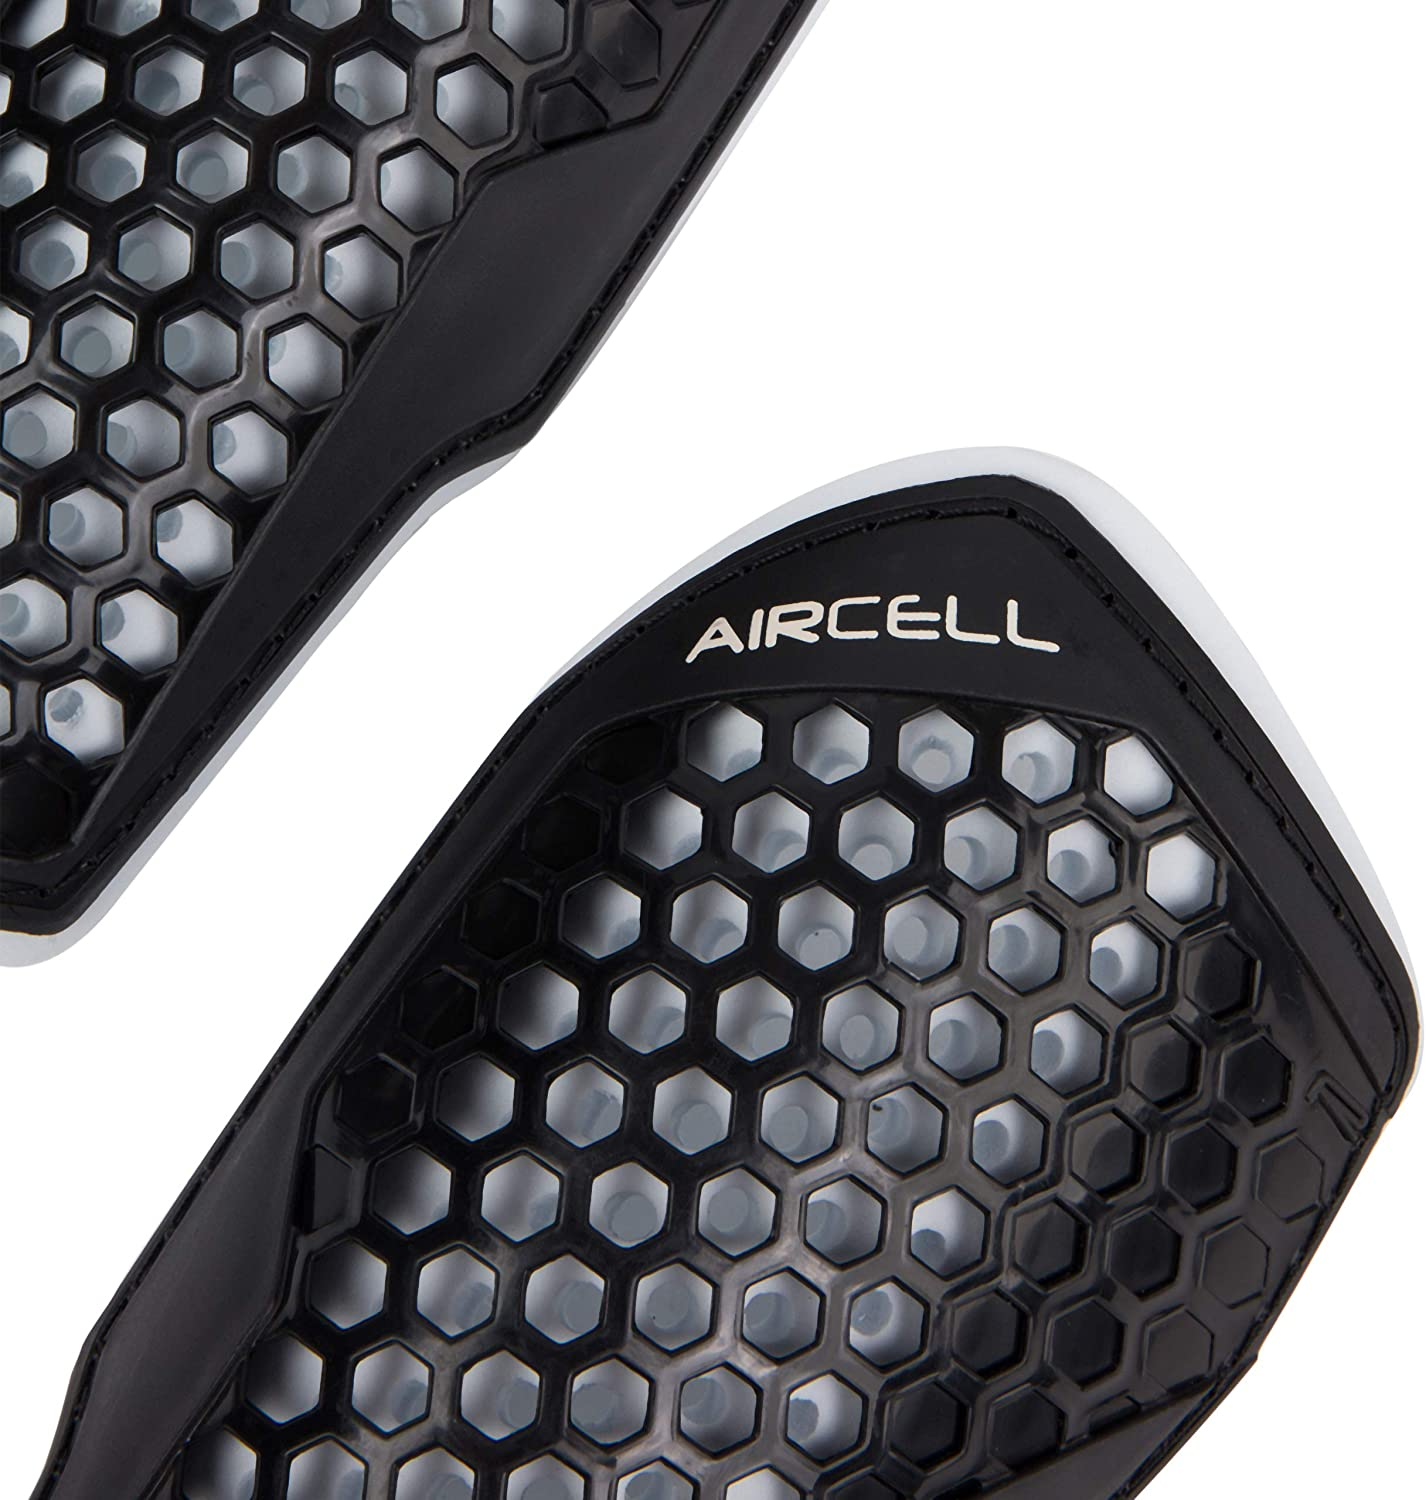 Amazon.com: Aircell velocidad espinilleras: Sports & Outdoors